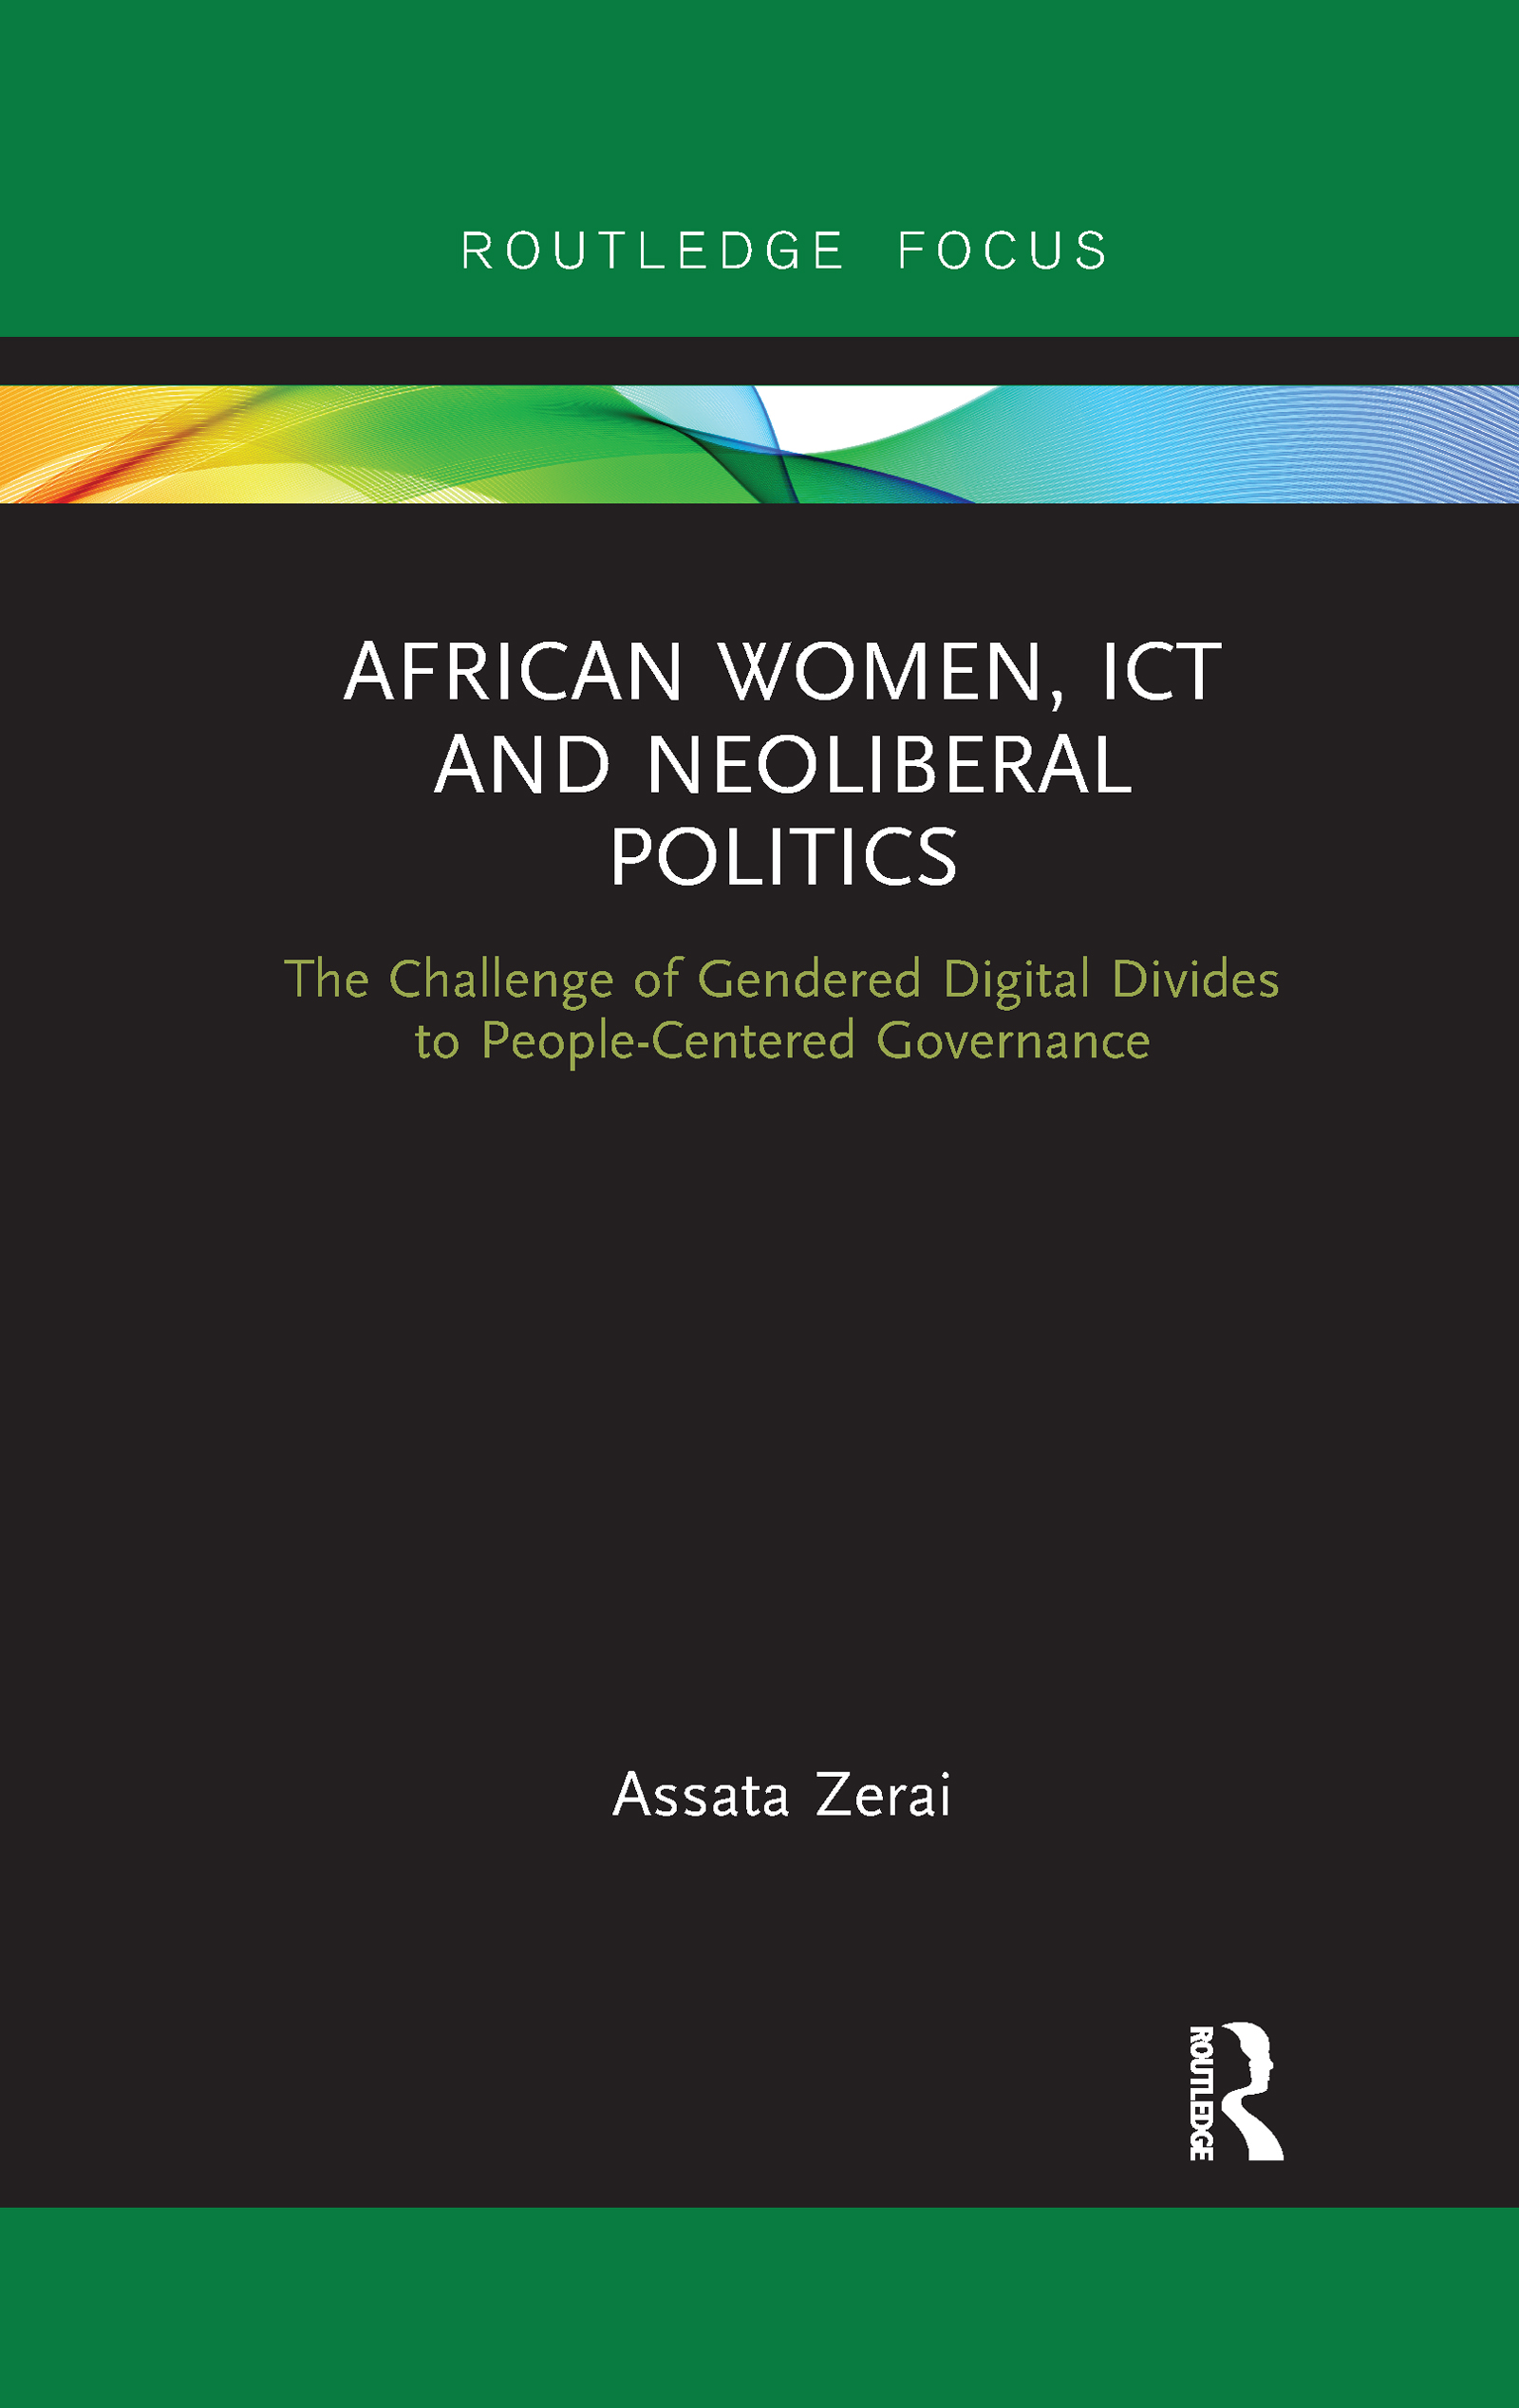 African Women, ICT and Neoliberal Politics